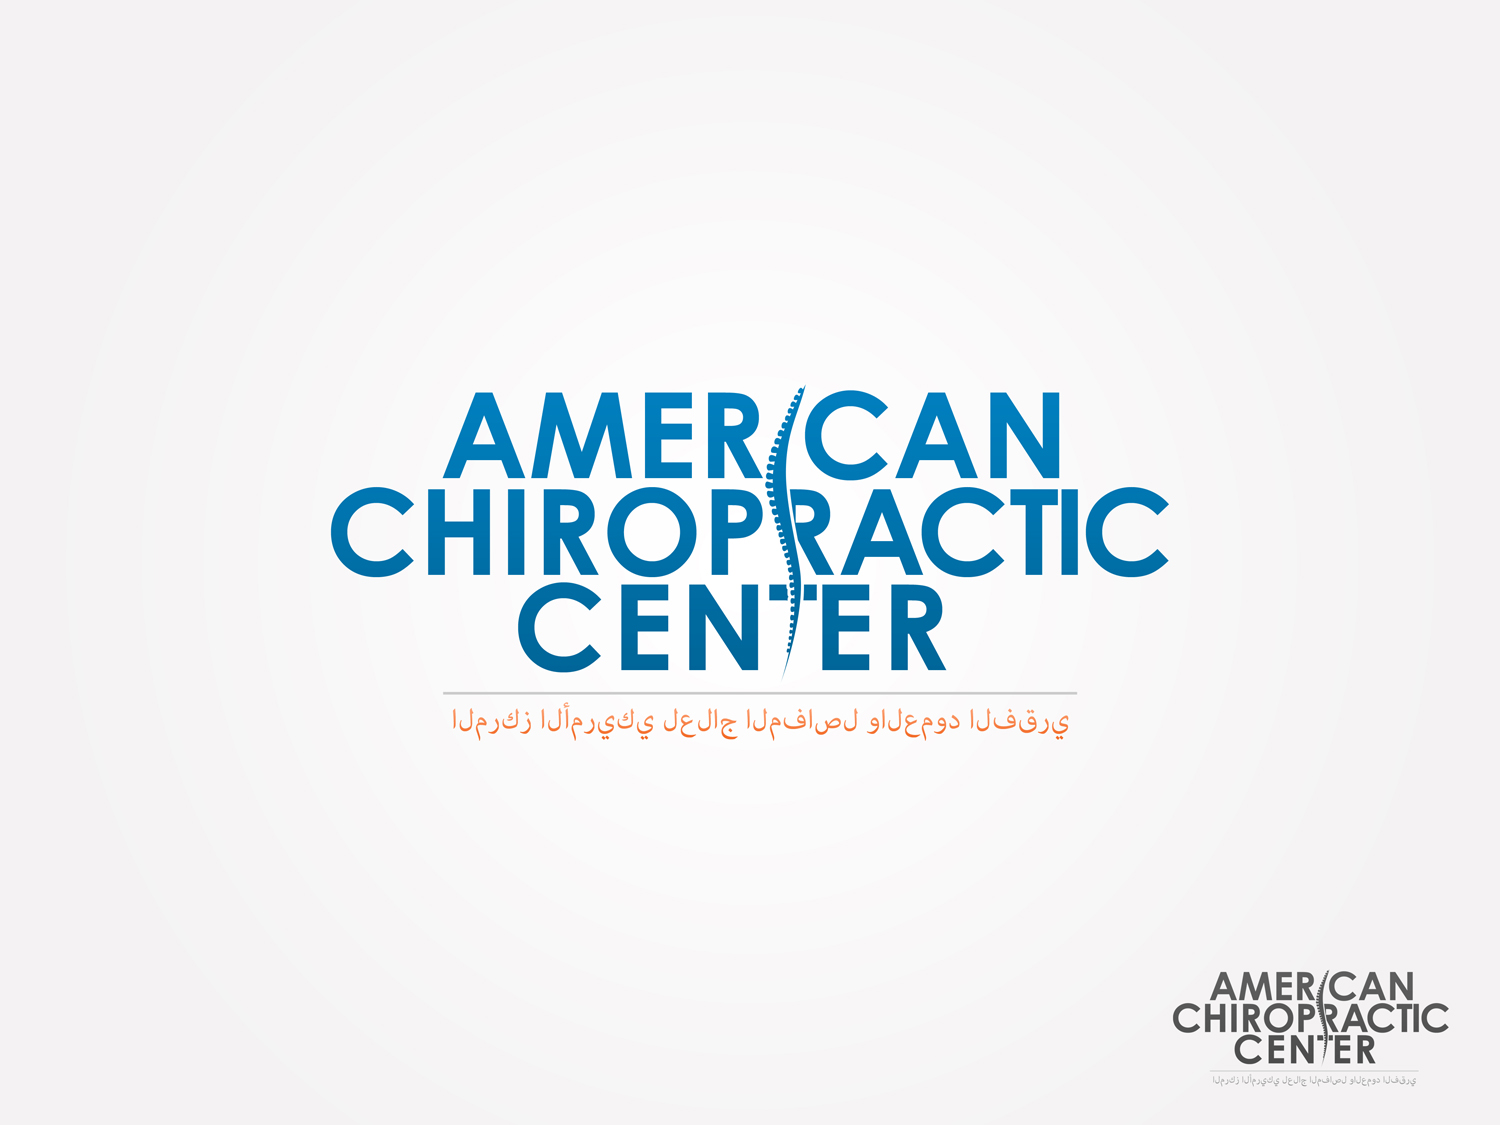 Logo Design by Qoaldjsk - Entry No. 245 in the Logo Design Contest Logo Design for American Chiropractic Center.